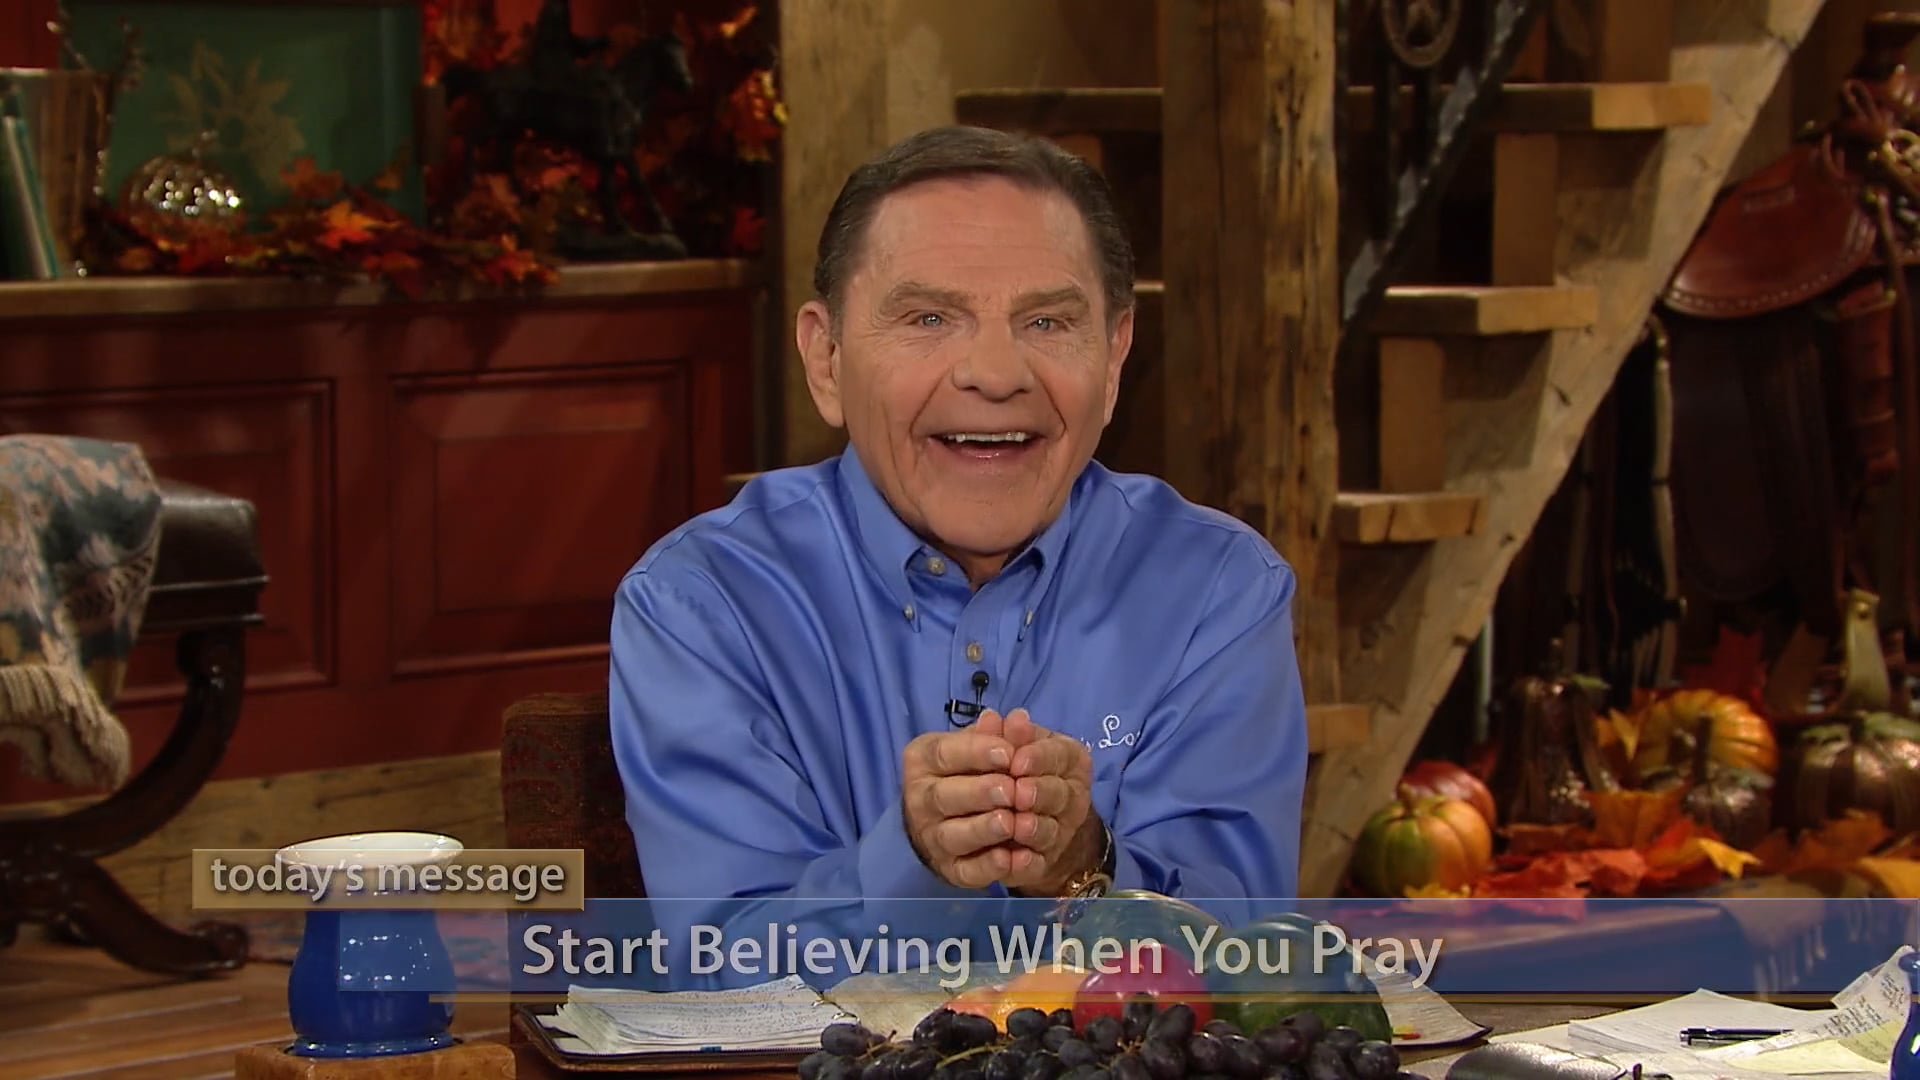 Real faith believes before the manifestation! Find out how, on Believer's Voice of Victory, as Kenneth and Gloria Copeland teach you to start believing when you pray to activate your faith for breakthrough and victory. Believe God's WORD, speak God's WORD, then act like it's true to get results!